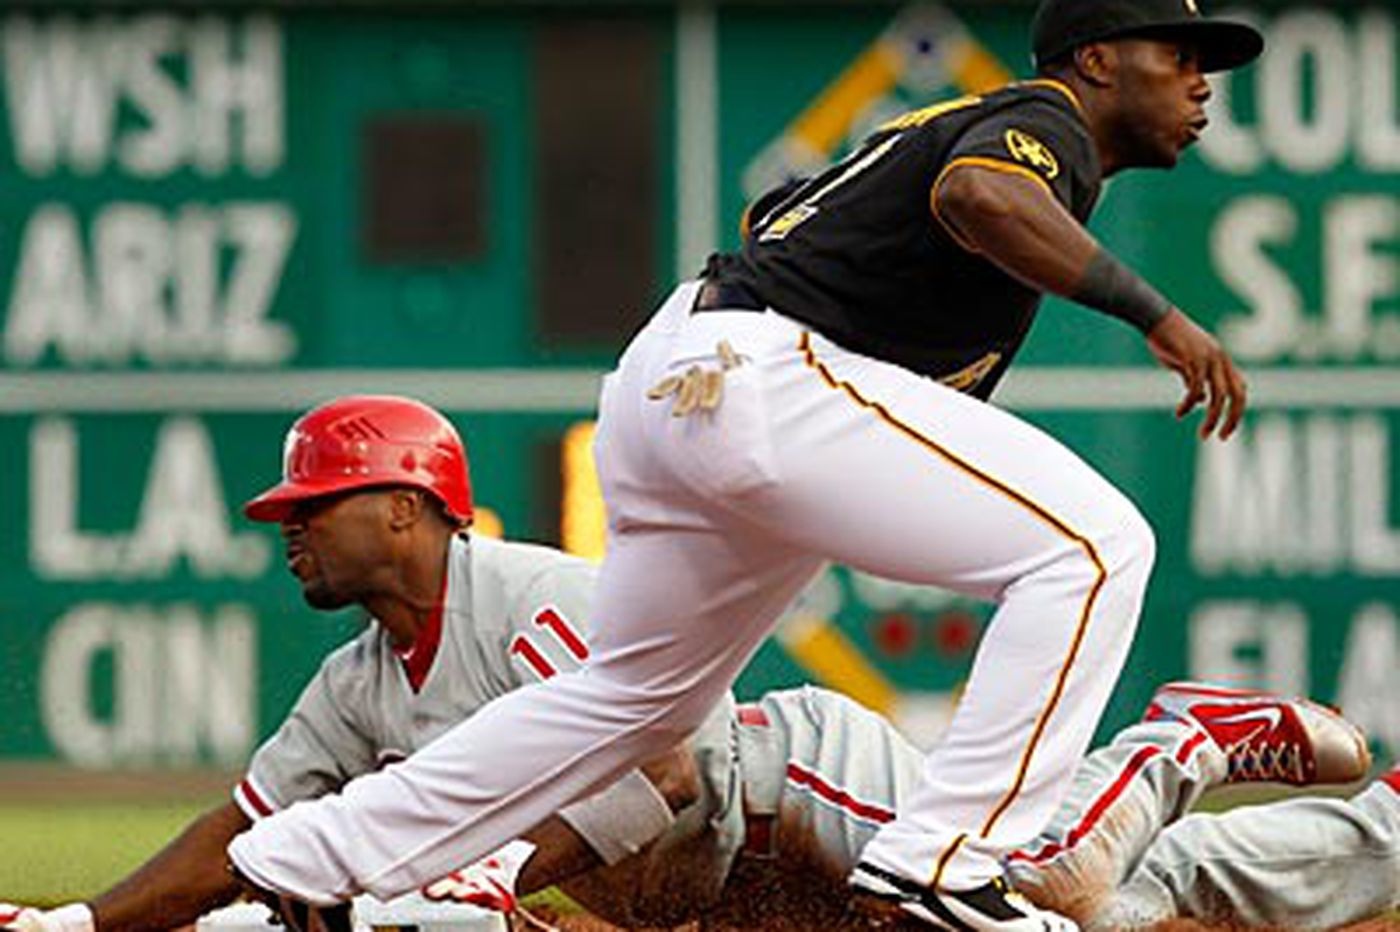 Pirates beat Phillies, 2-1, in extra innings